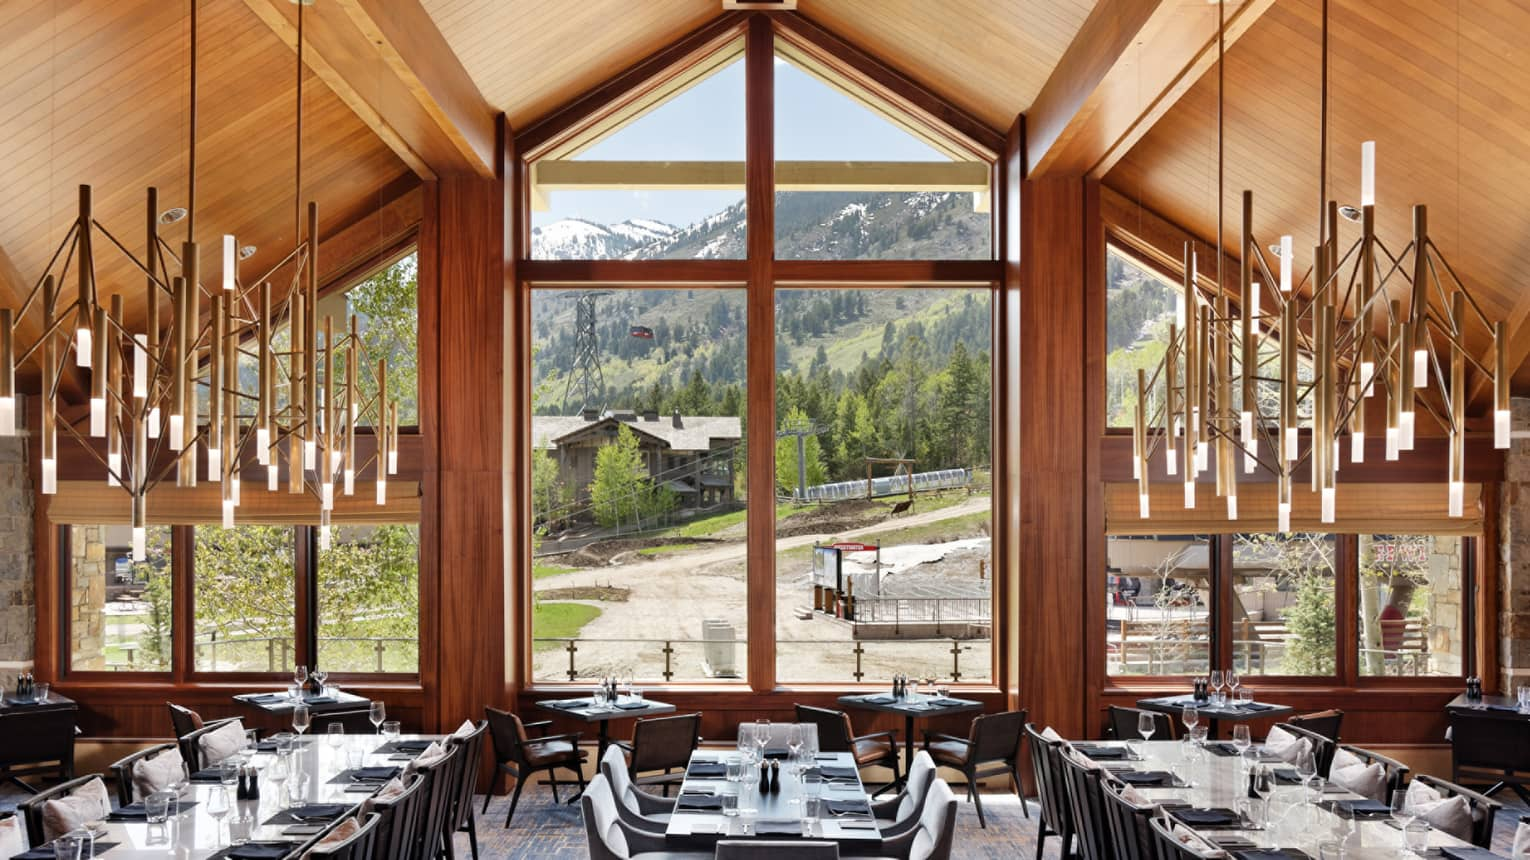 Dining room with long tables, chandeliers on either side, giant wood-framed window with a view of the mountains